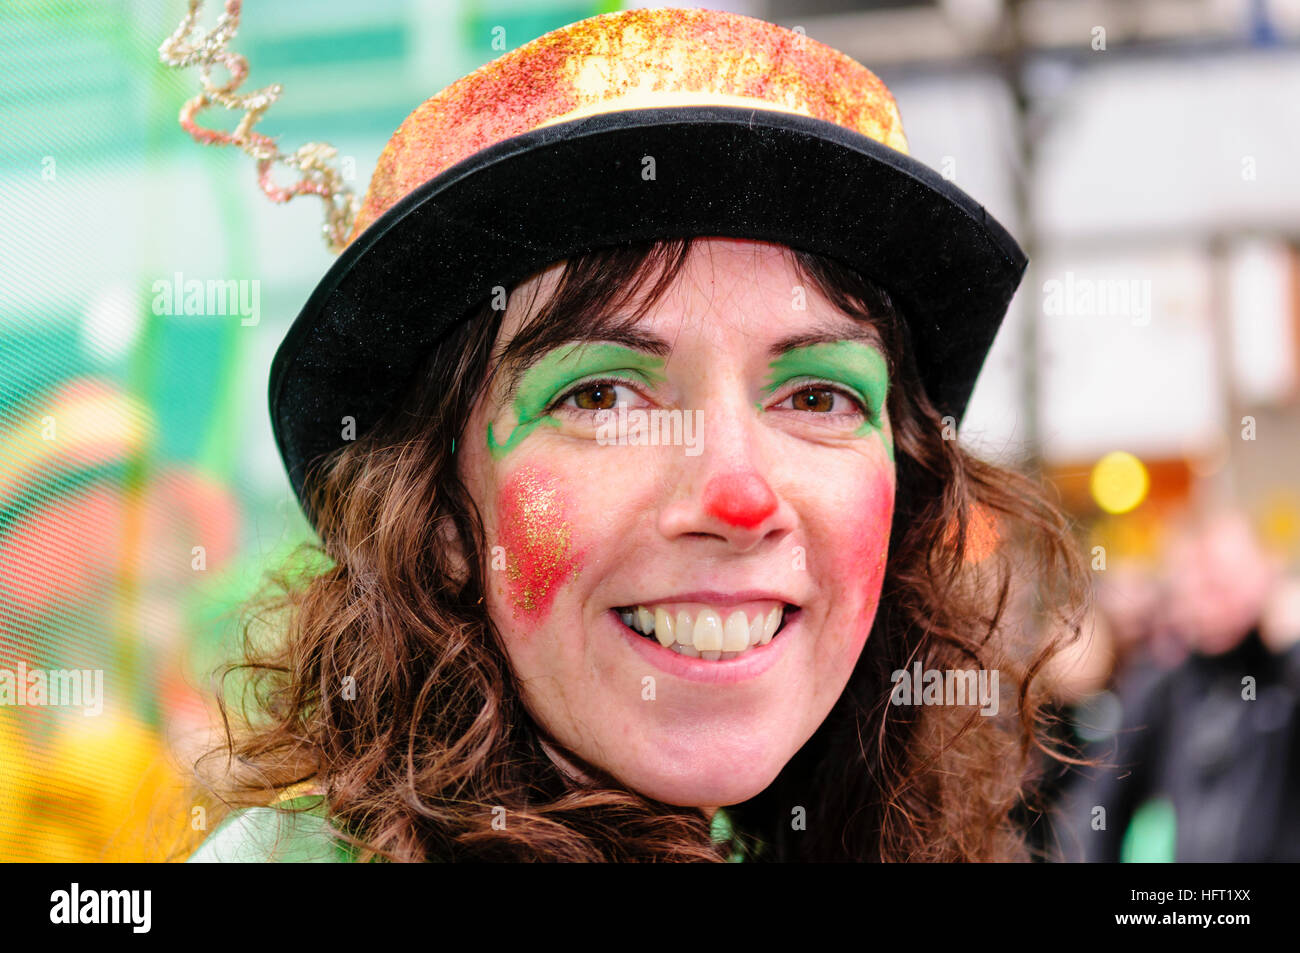 A woman with facepaint takes part in a circus performance - Stock Image